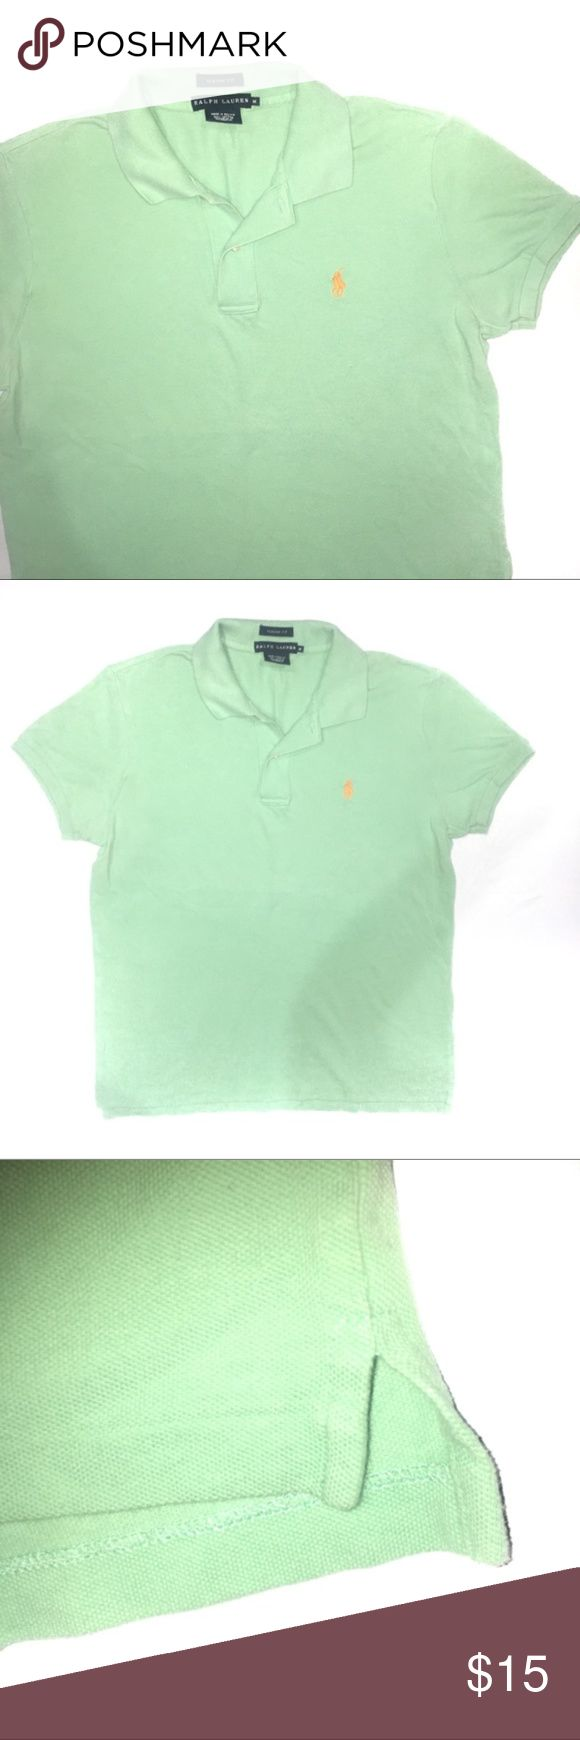 "Ralph Lauren Classic Fit Green Polo Shirt Ralph Lauren classic fit orange polo shirt. Size medium. Green with orange emblem. Has ribbed cuffs and collar. Slits up the sides. Has a tiny hole in it as pictured. 100% cotton. 38"" chest. 25.5"" length. No trades, offers welcomee! Ralph Lauren Black Label Shirts Polos"